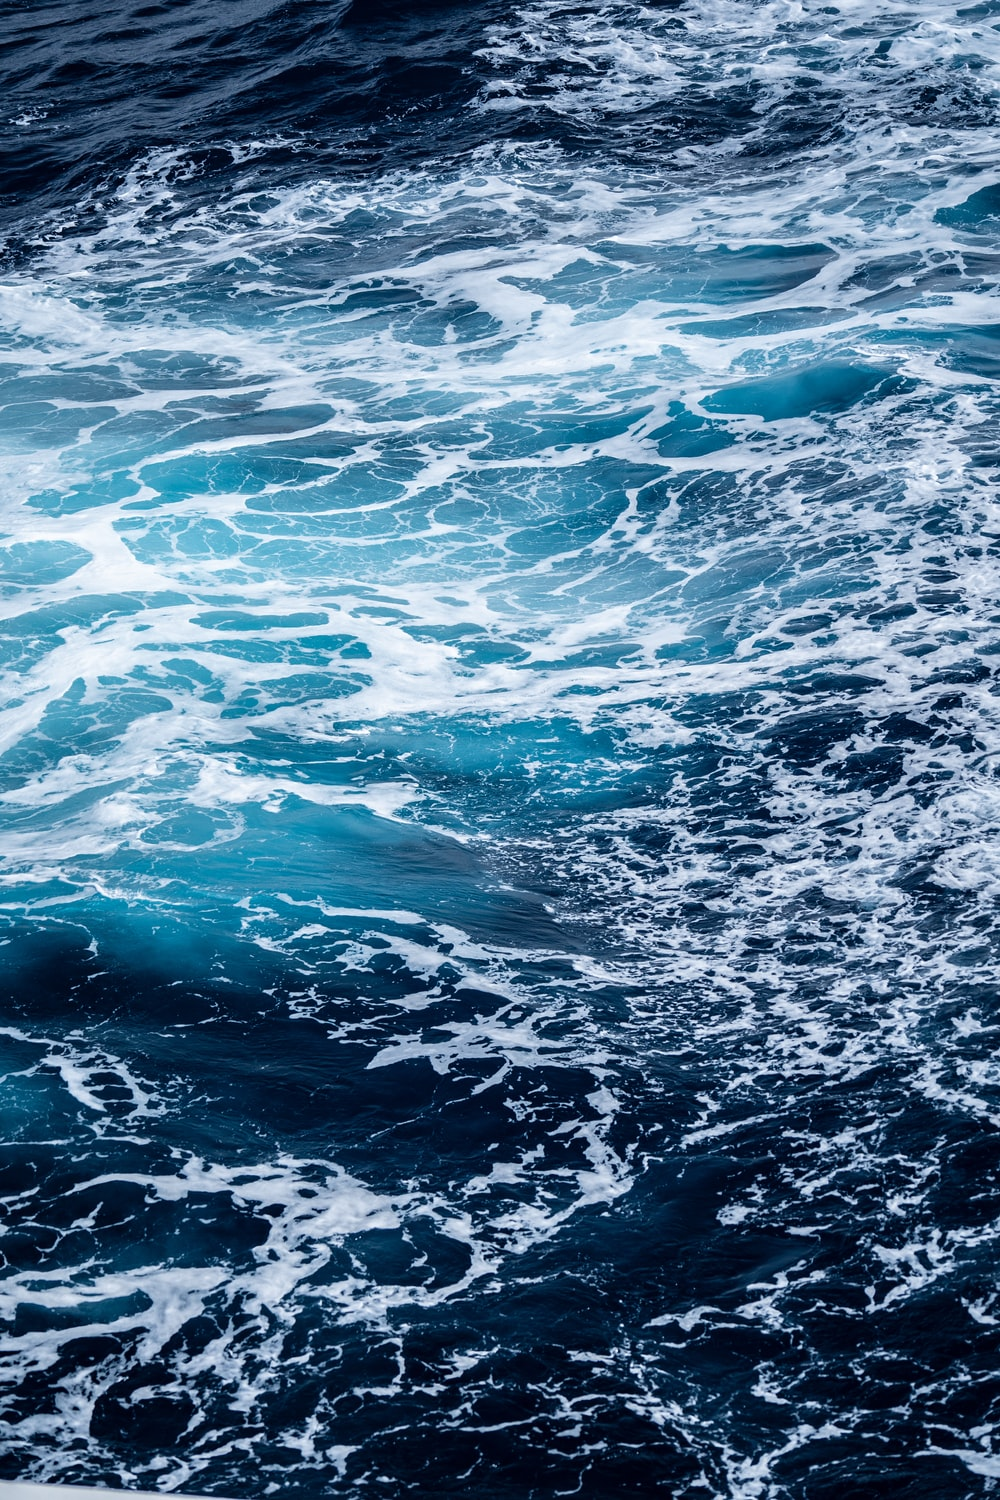 calm body of water close-up photo